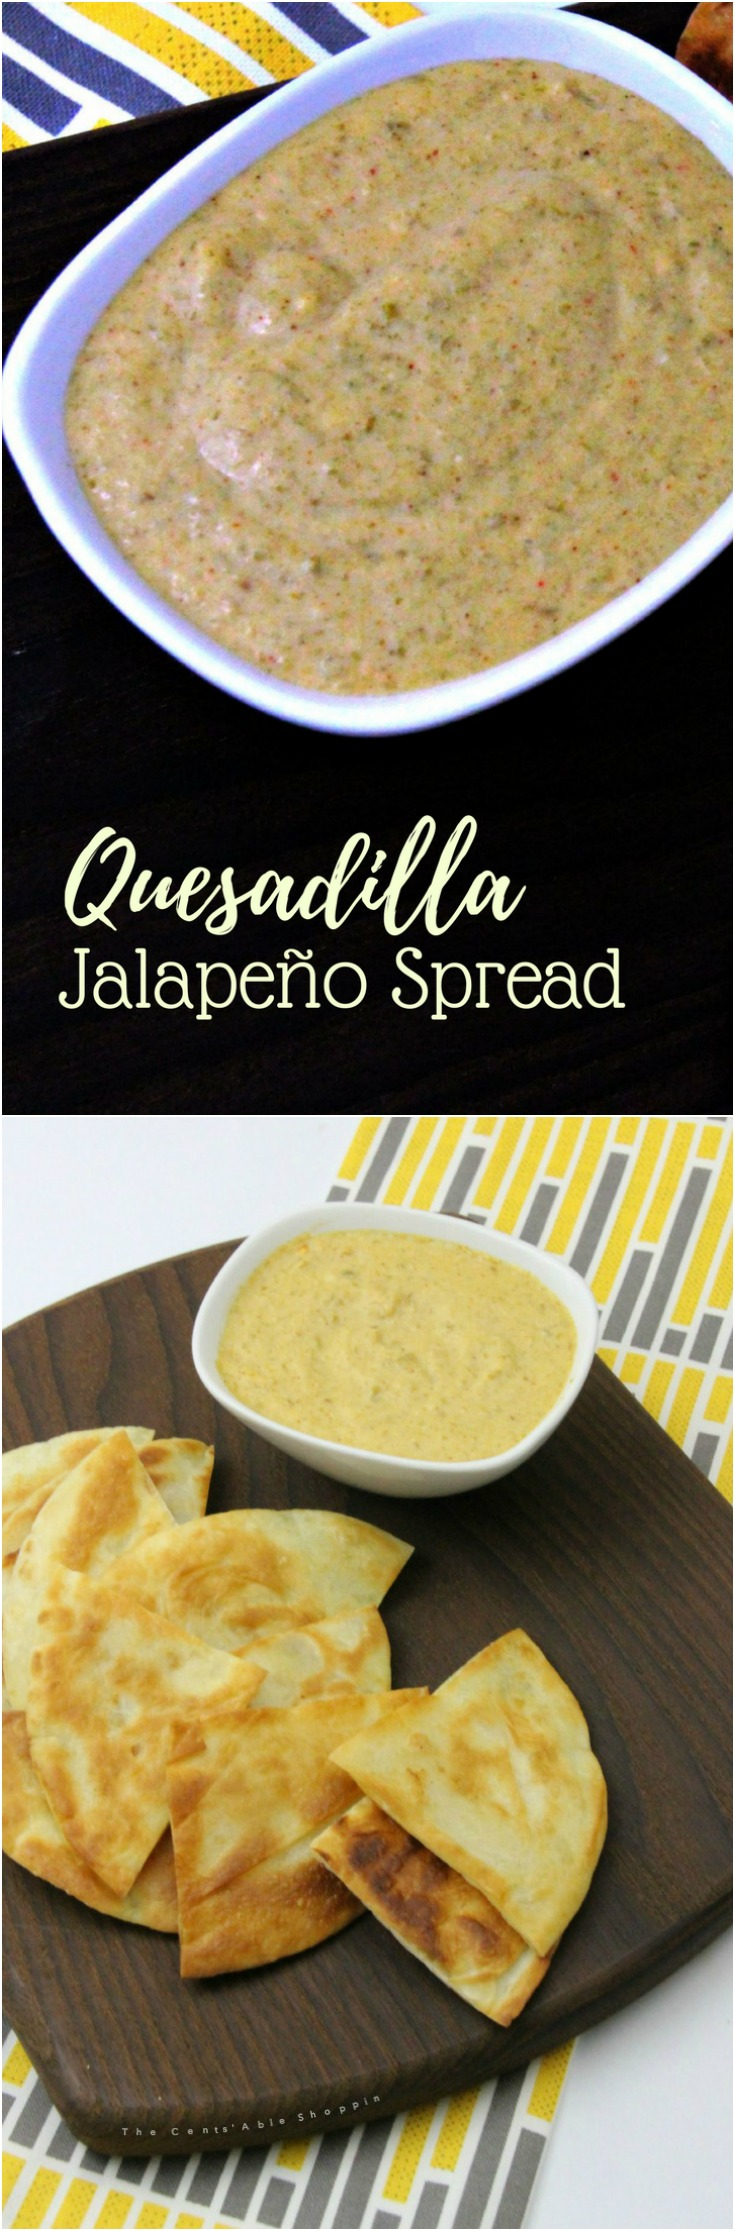 A kicked up quesadilla jalapeño spread that's simple to make and delicious spread on quesadillas, or used as a dip. #jalapenos #dip #appetizer